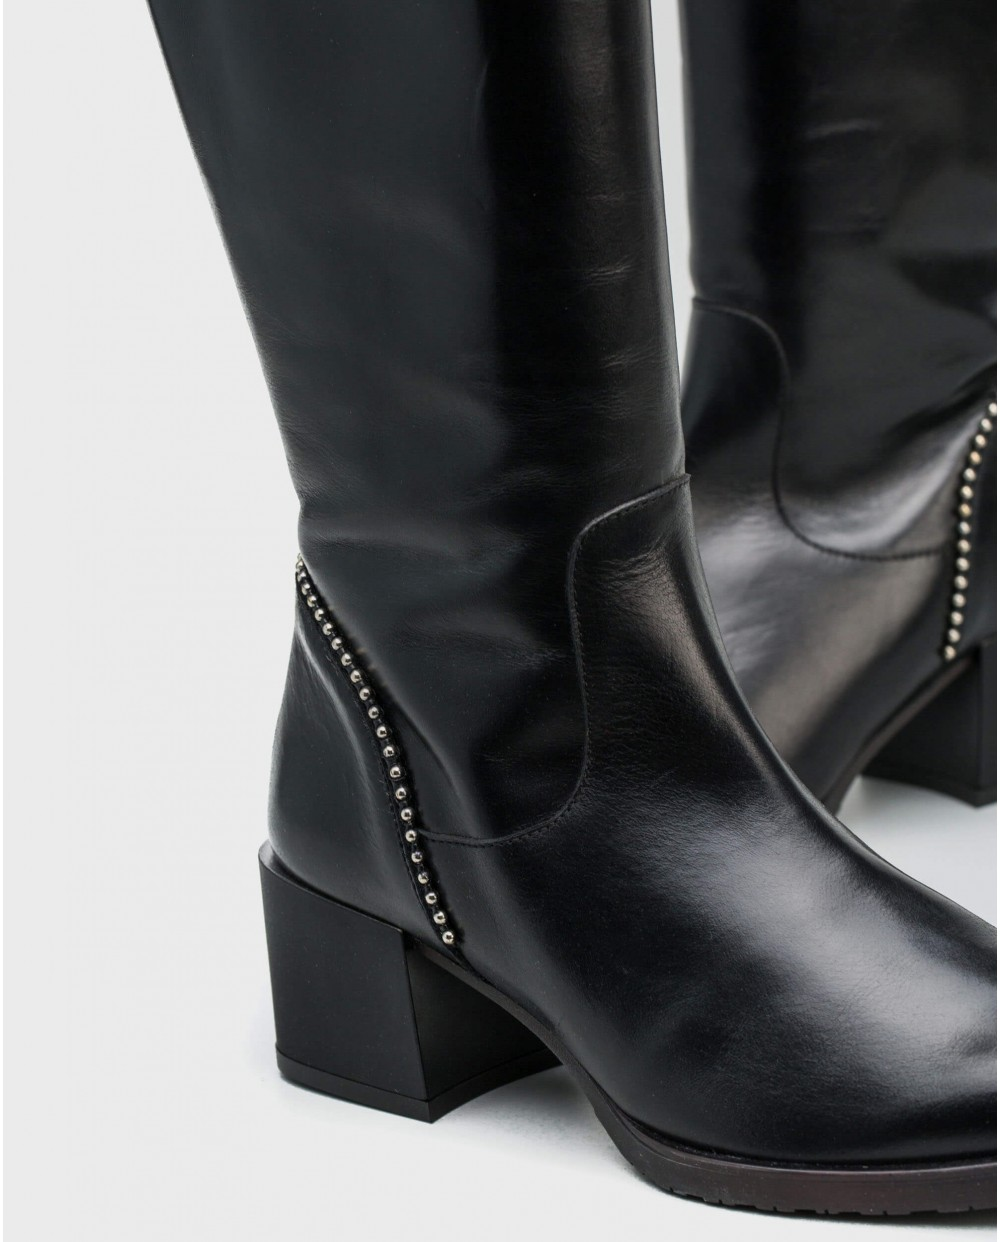 Wonders-Boots-Leather boot with micro stud